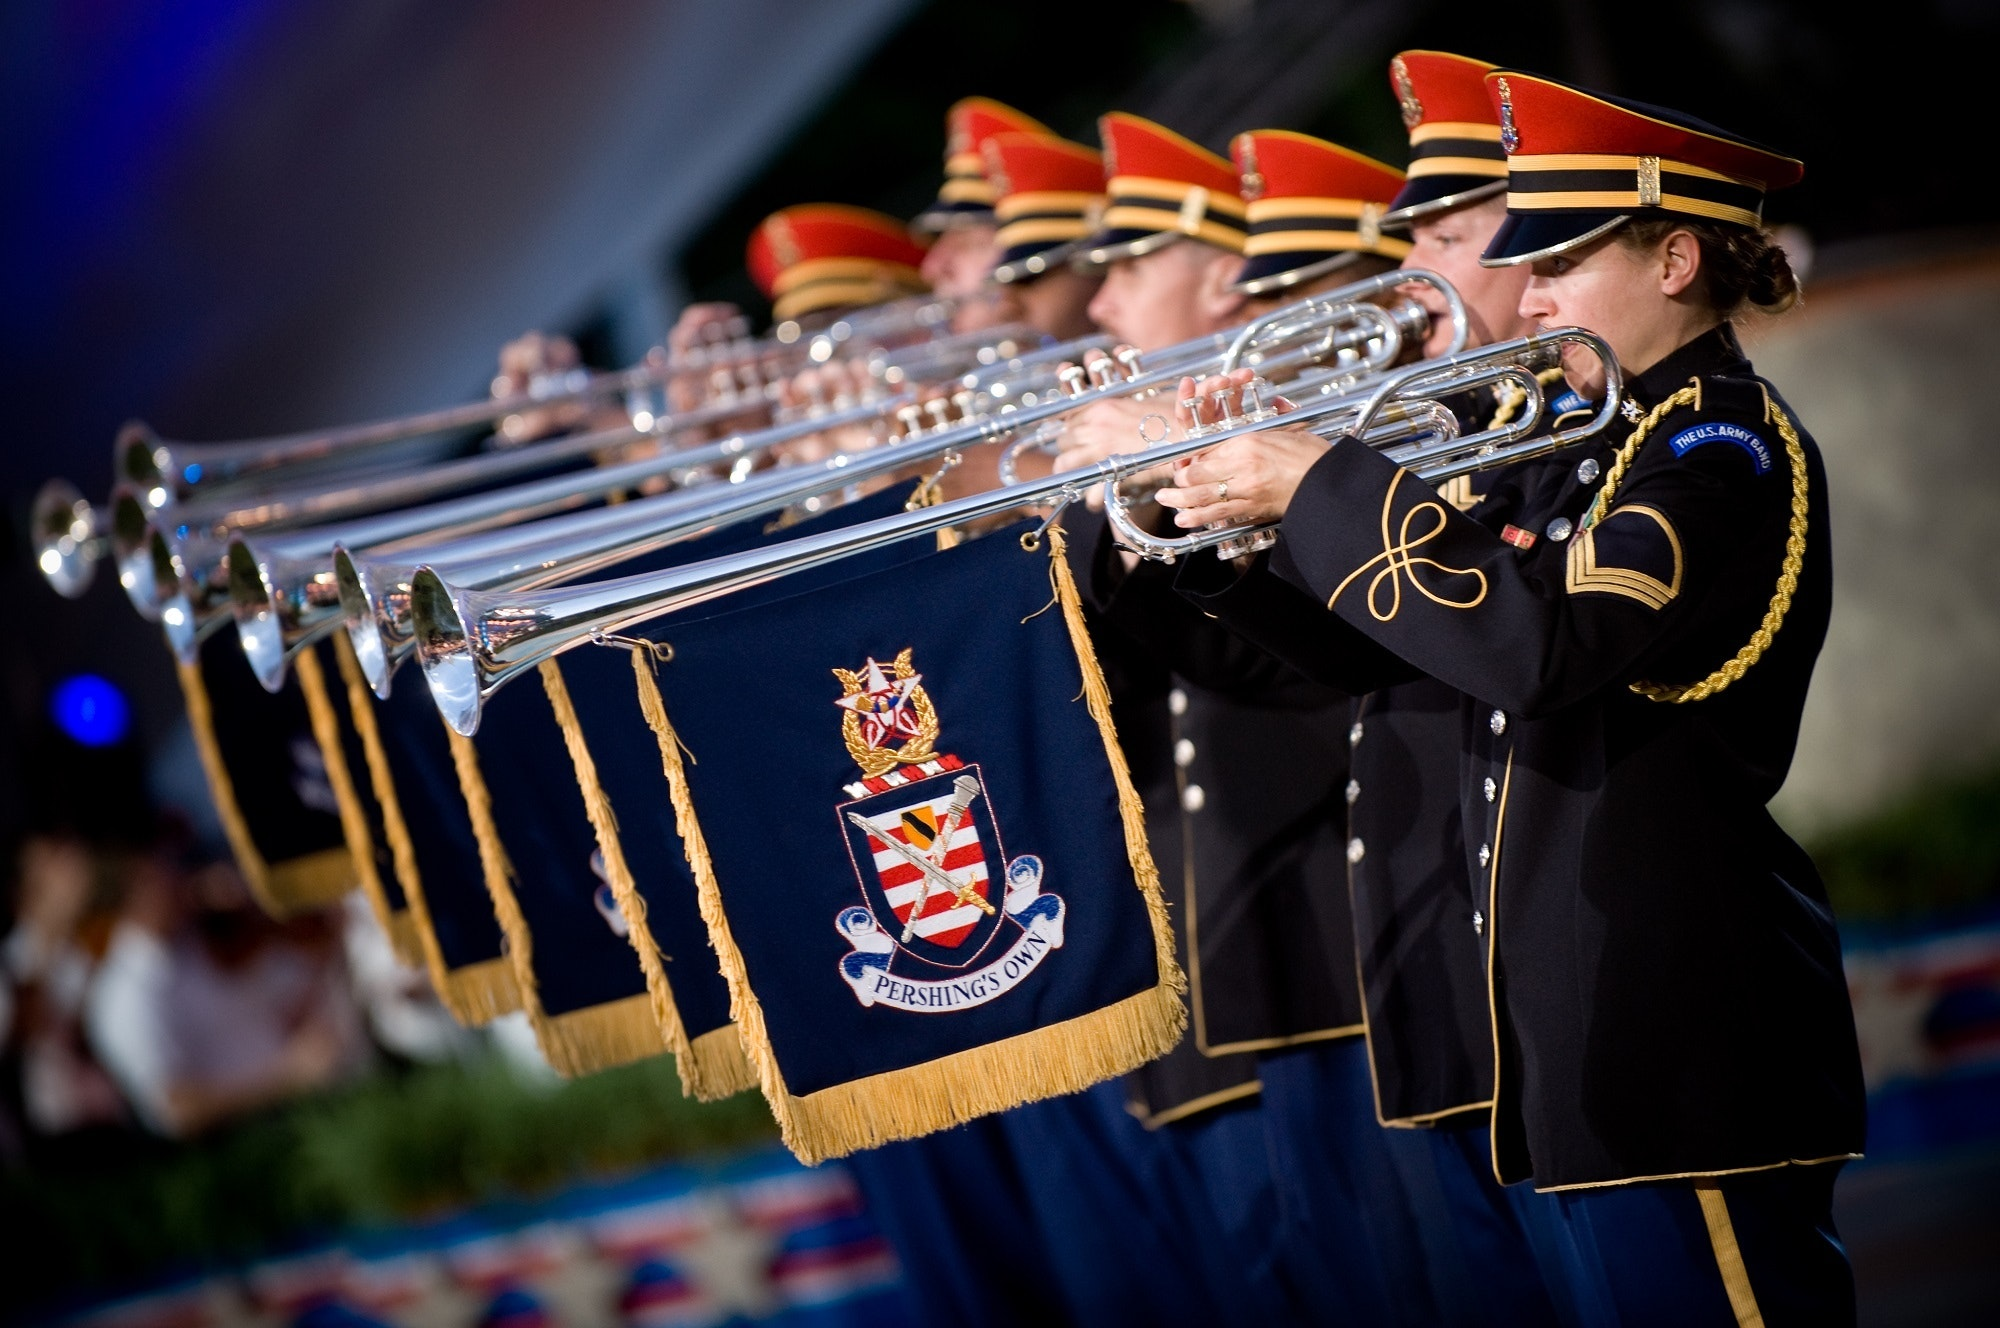 People in Uniform Using a Trumpet Instrument With Blue and Yellow